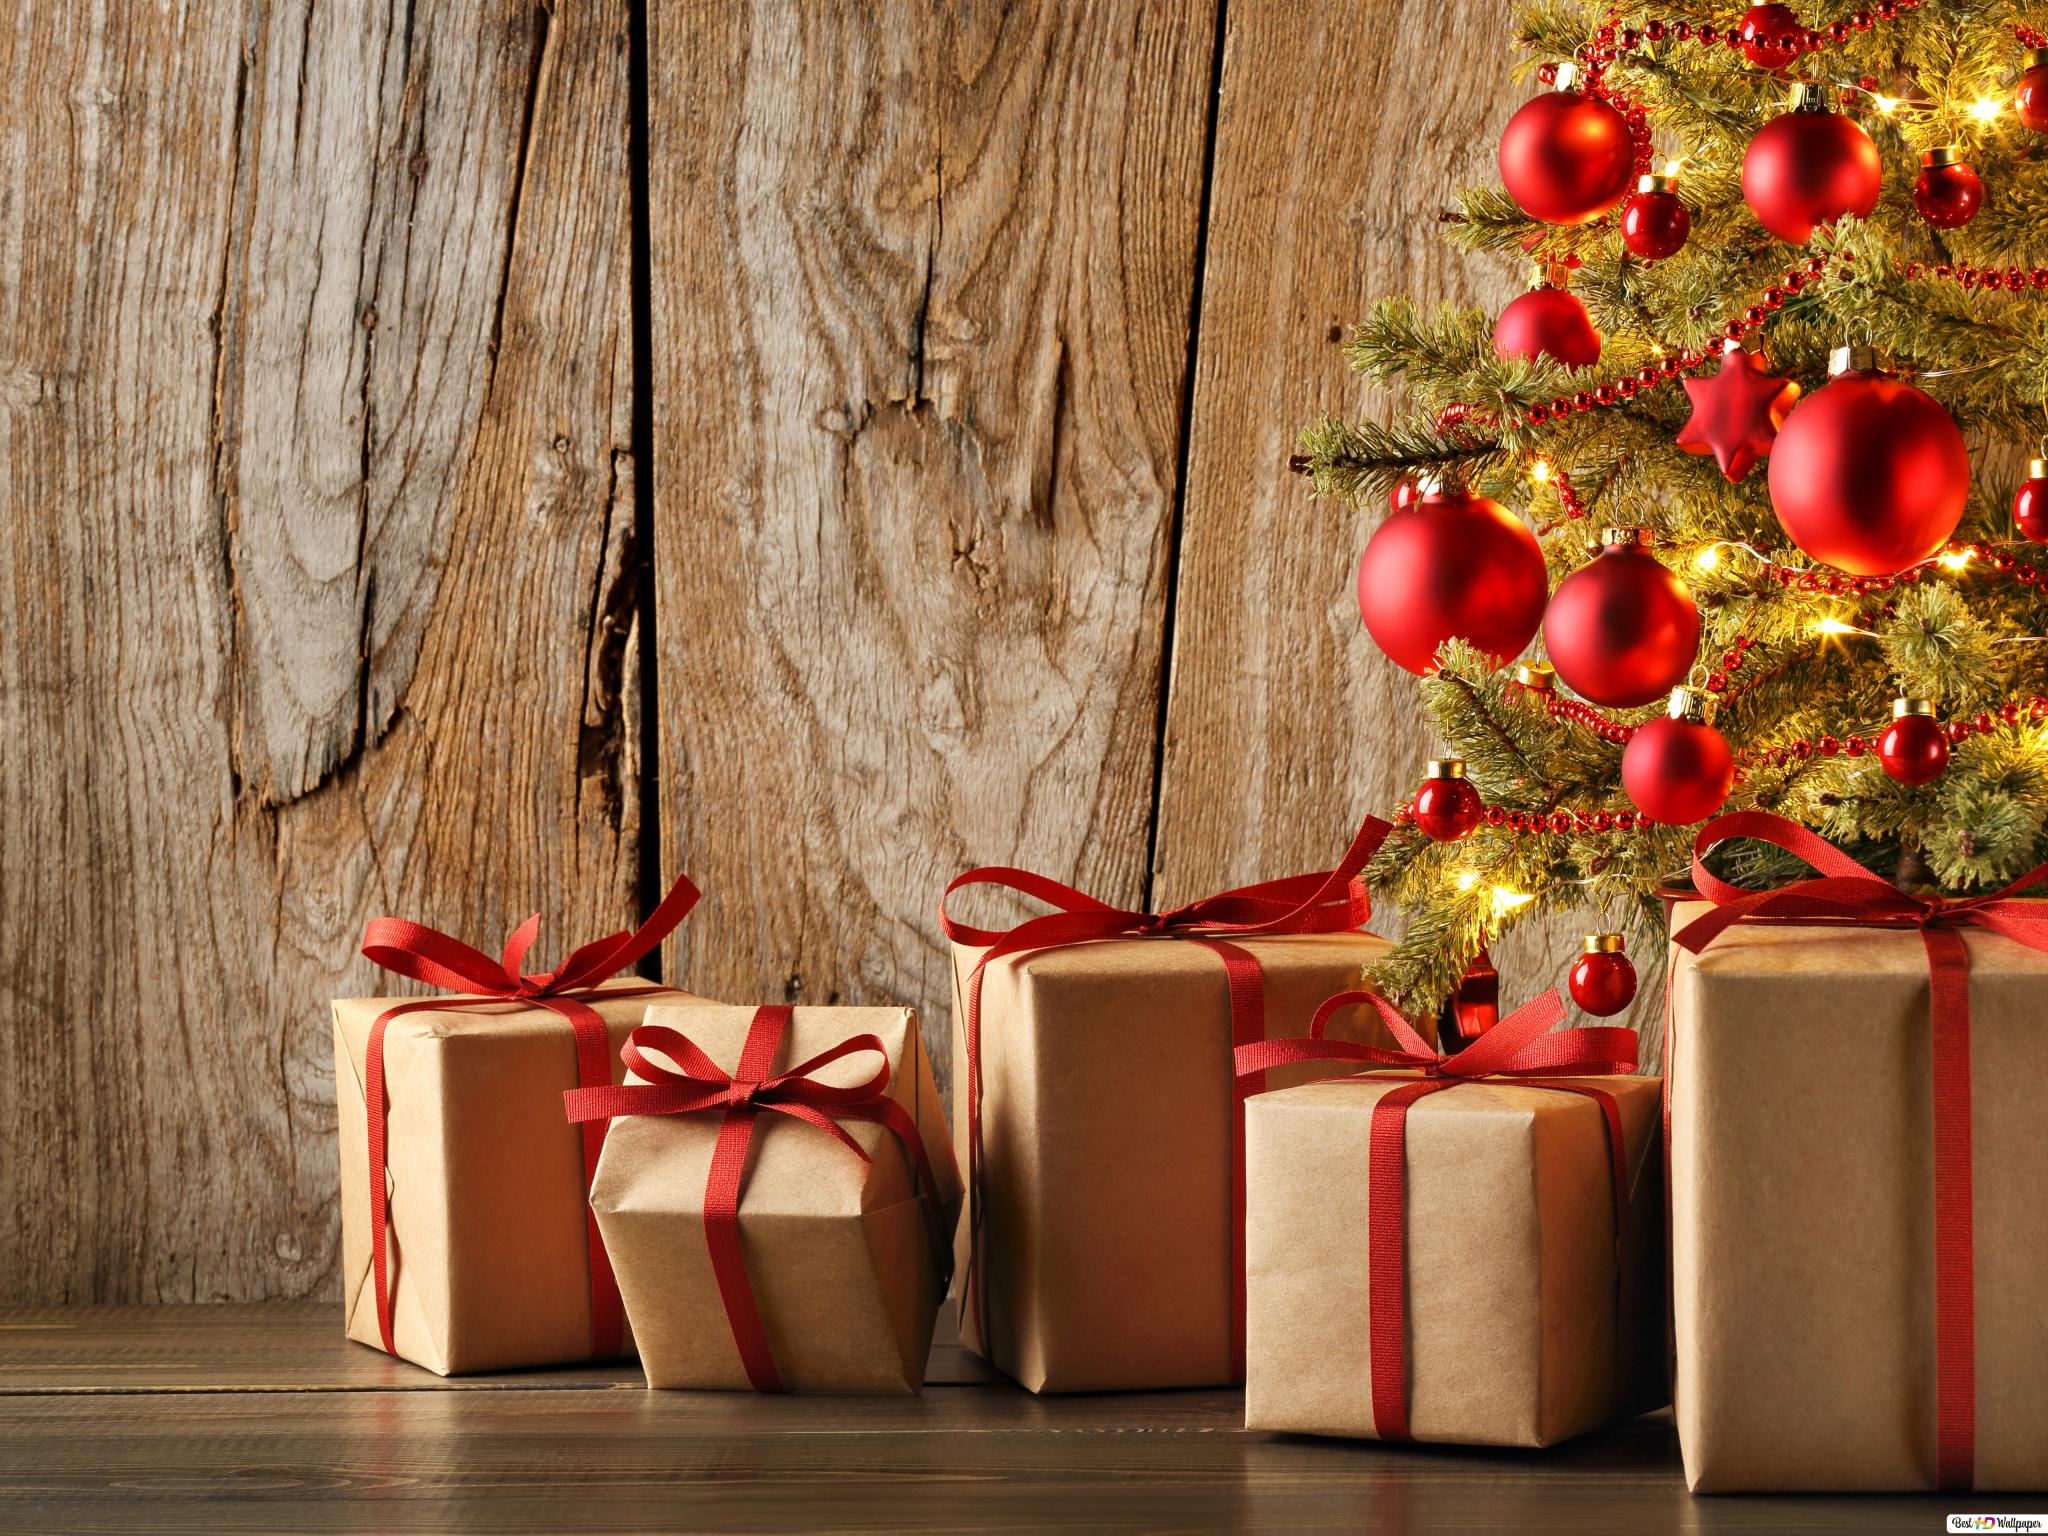 Christmas Gift Hd Wallpaper Download